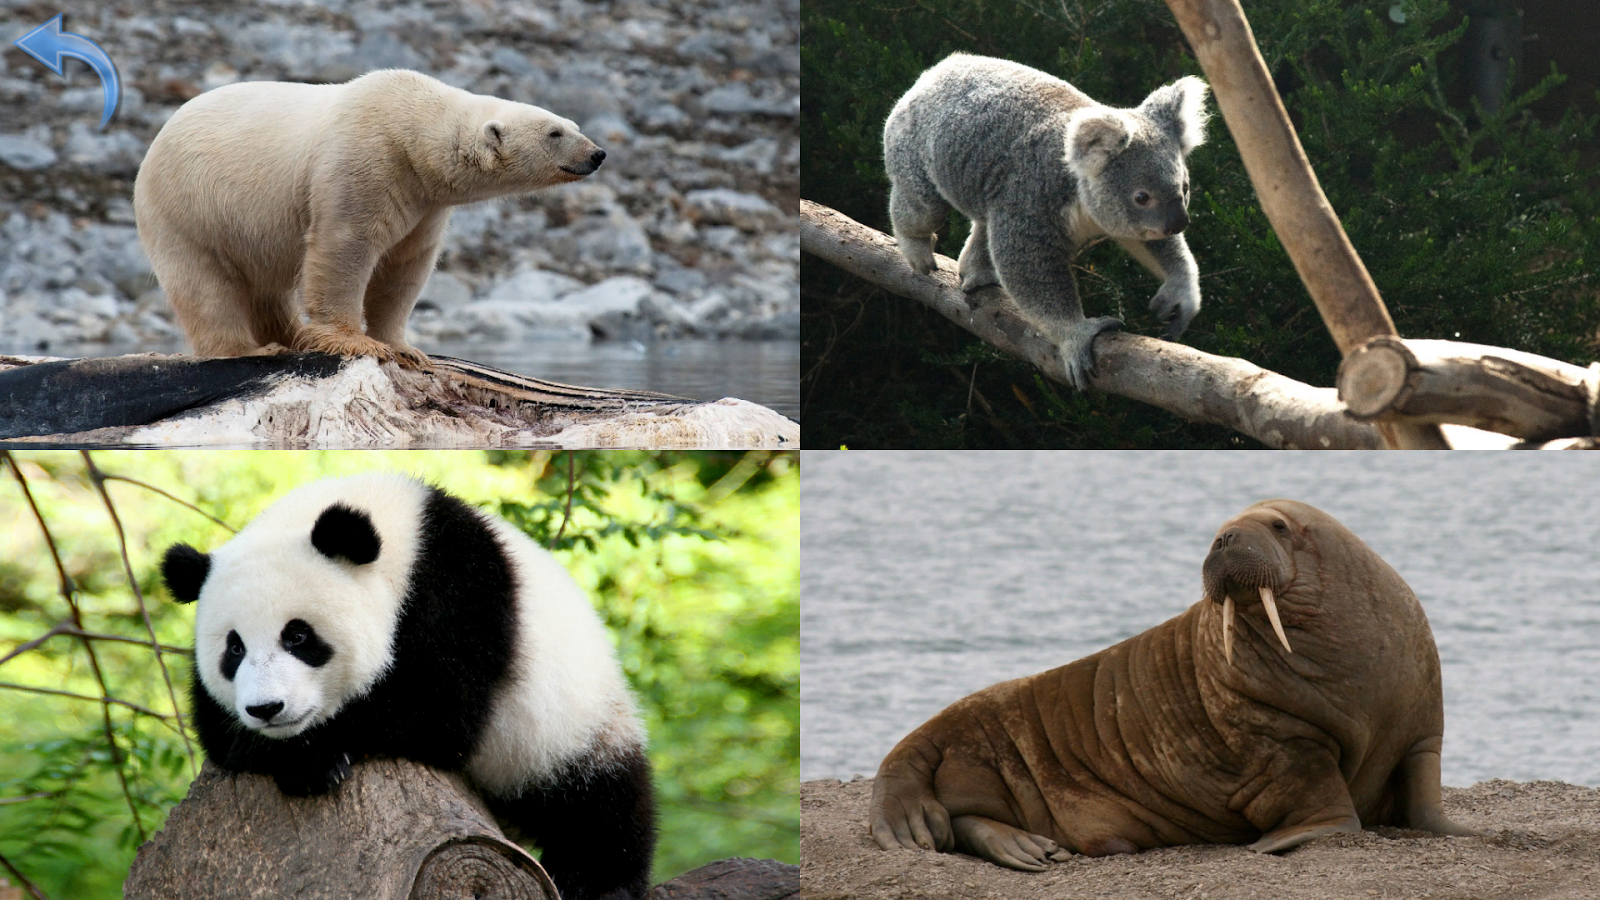 animals for kids planet earth animal sounds photo 6 5 5 apk